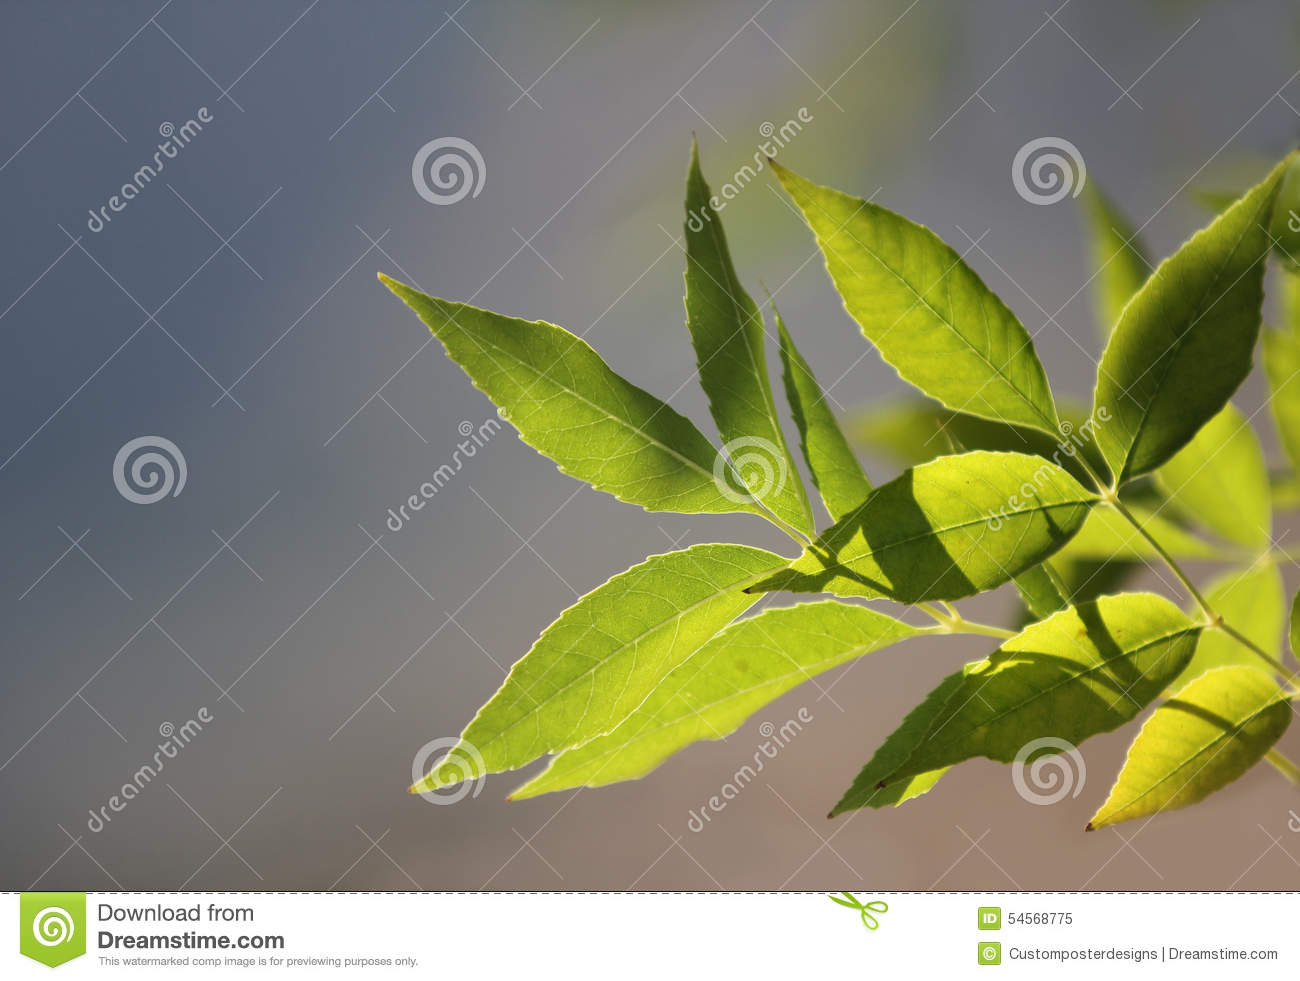 Download Green Leaves With A Blue Sky Background. Stock Image - Image of background, freshness: 54568775